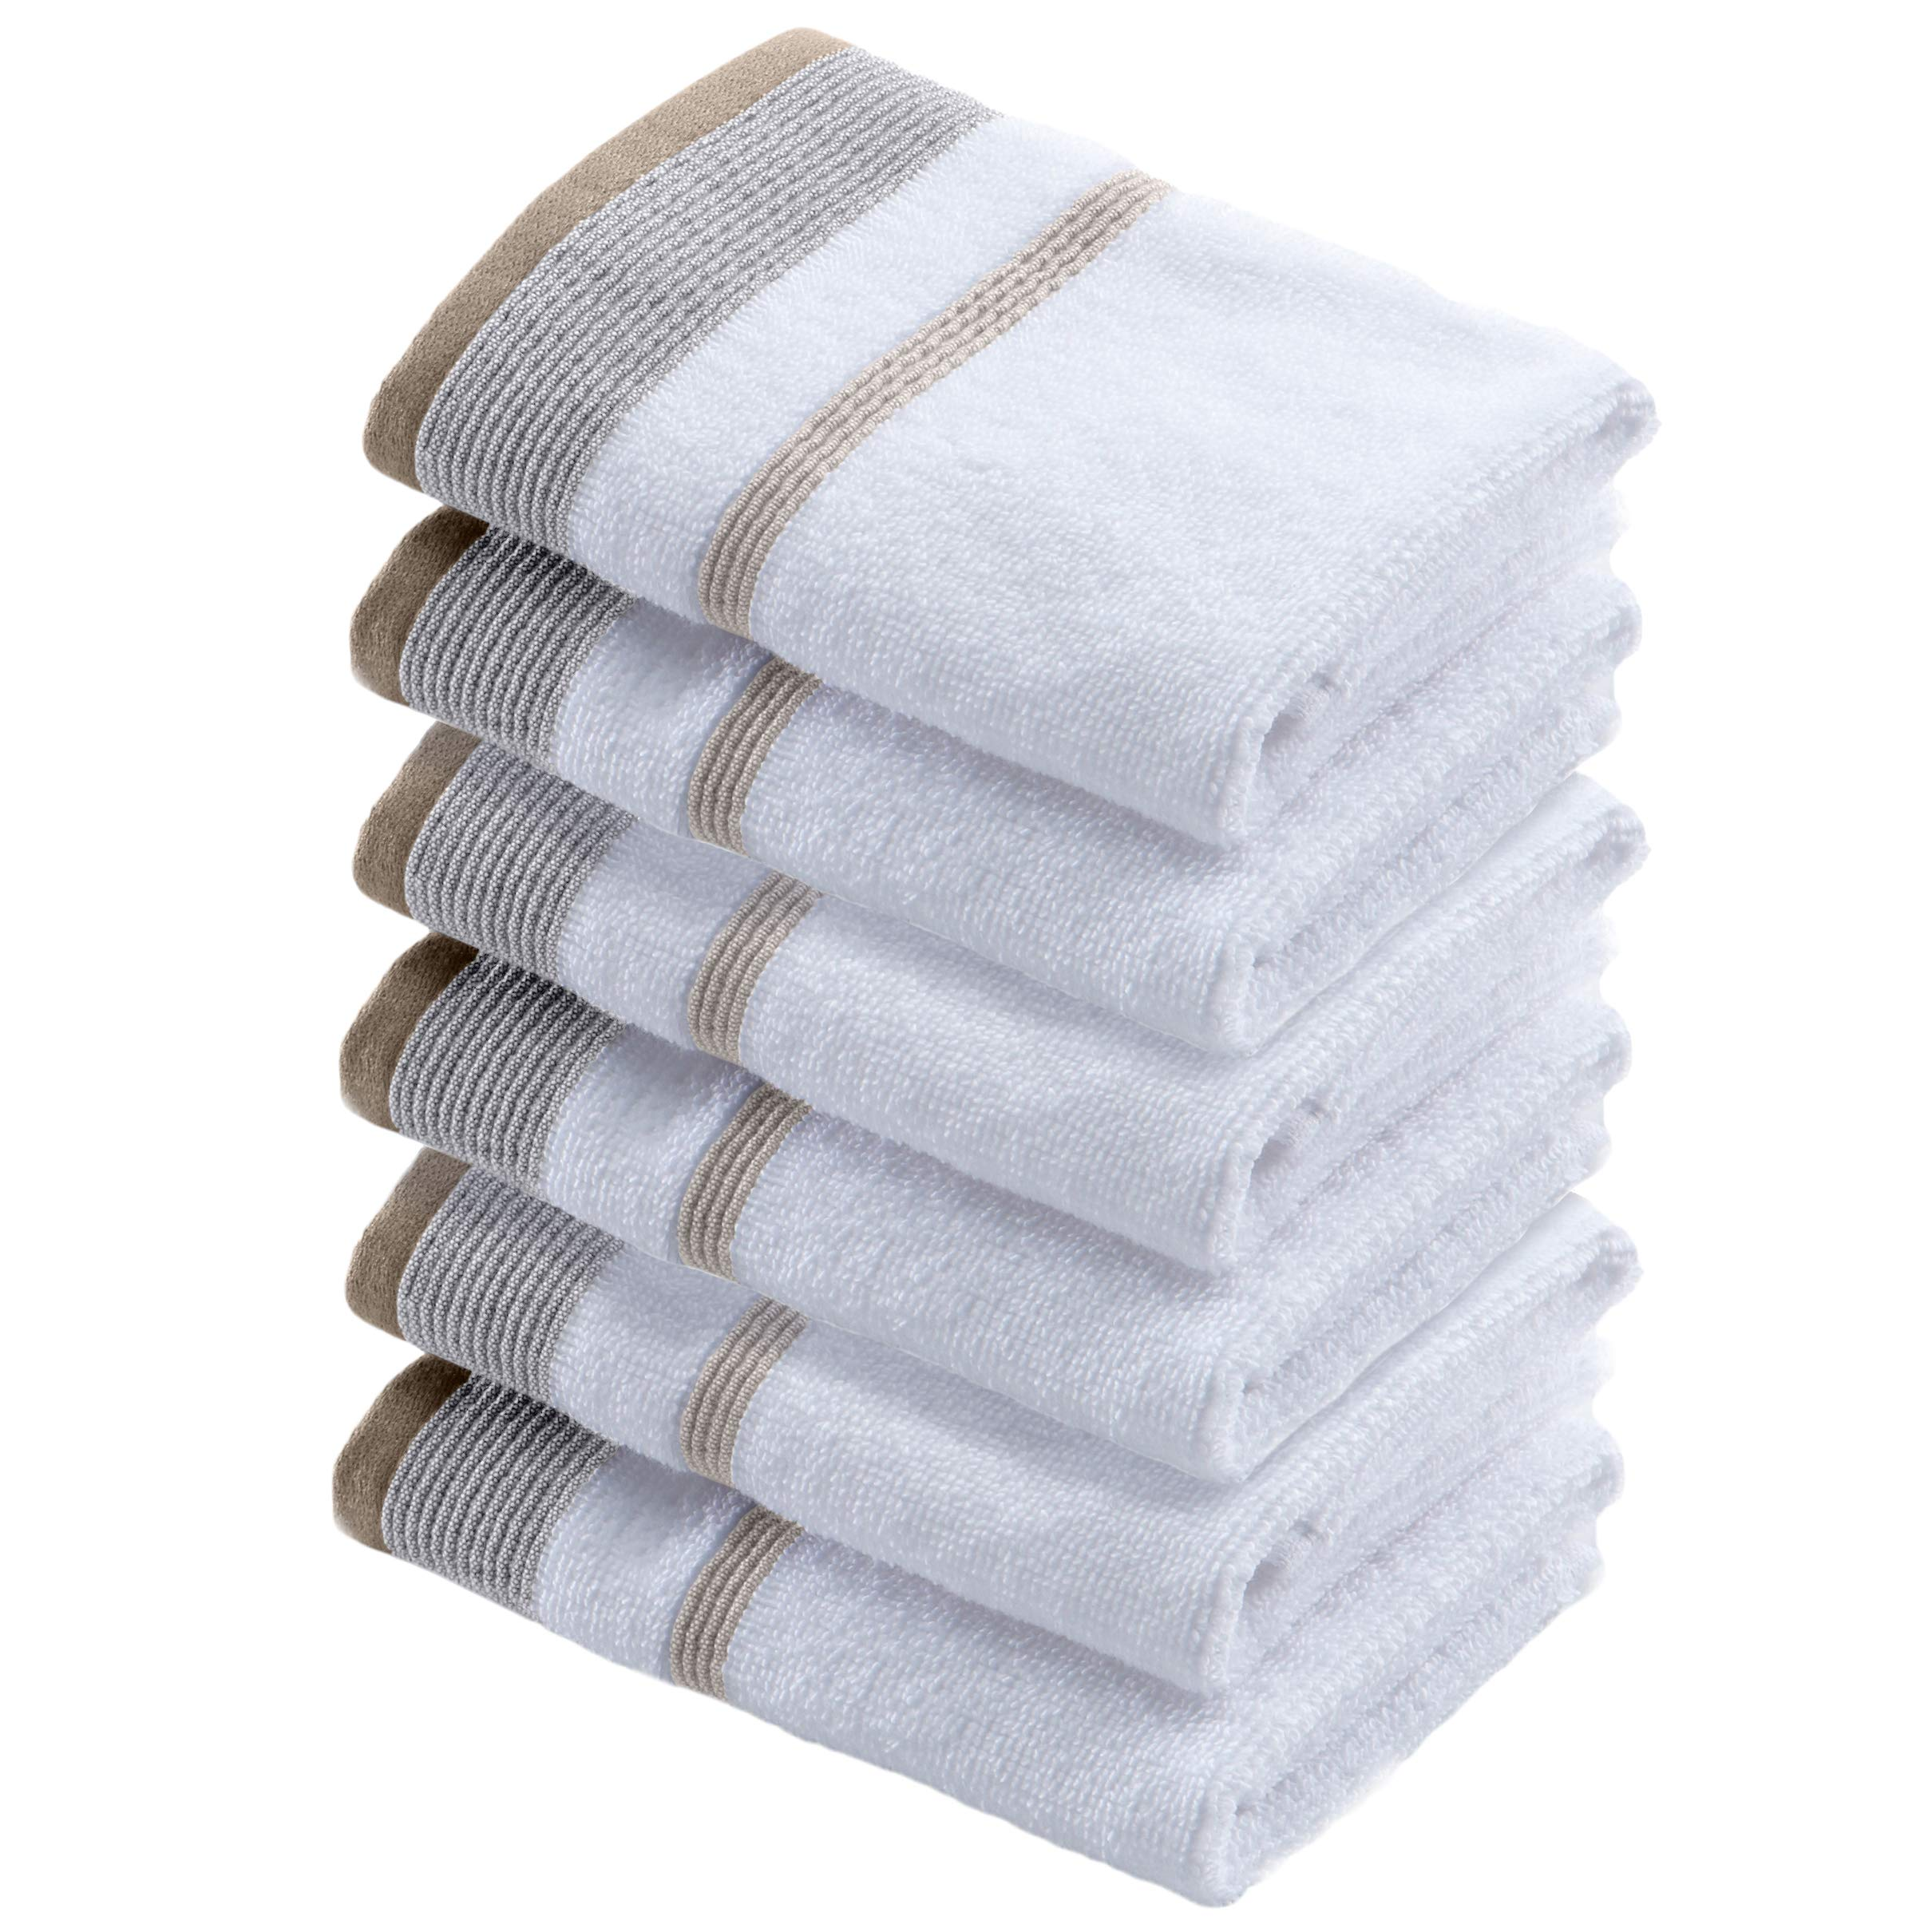 Great Bay Home 6-Pack Luxury Hotel/Spa 100% Turkish Cotton Striped Washcloths, 500 GSM. Includes 6 Washcloths. Noelle Collection Brand. (Washcloths (6X), Glacier Grey/Cappuccino)